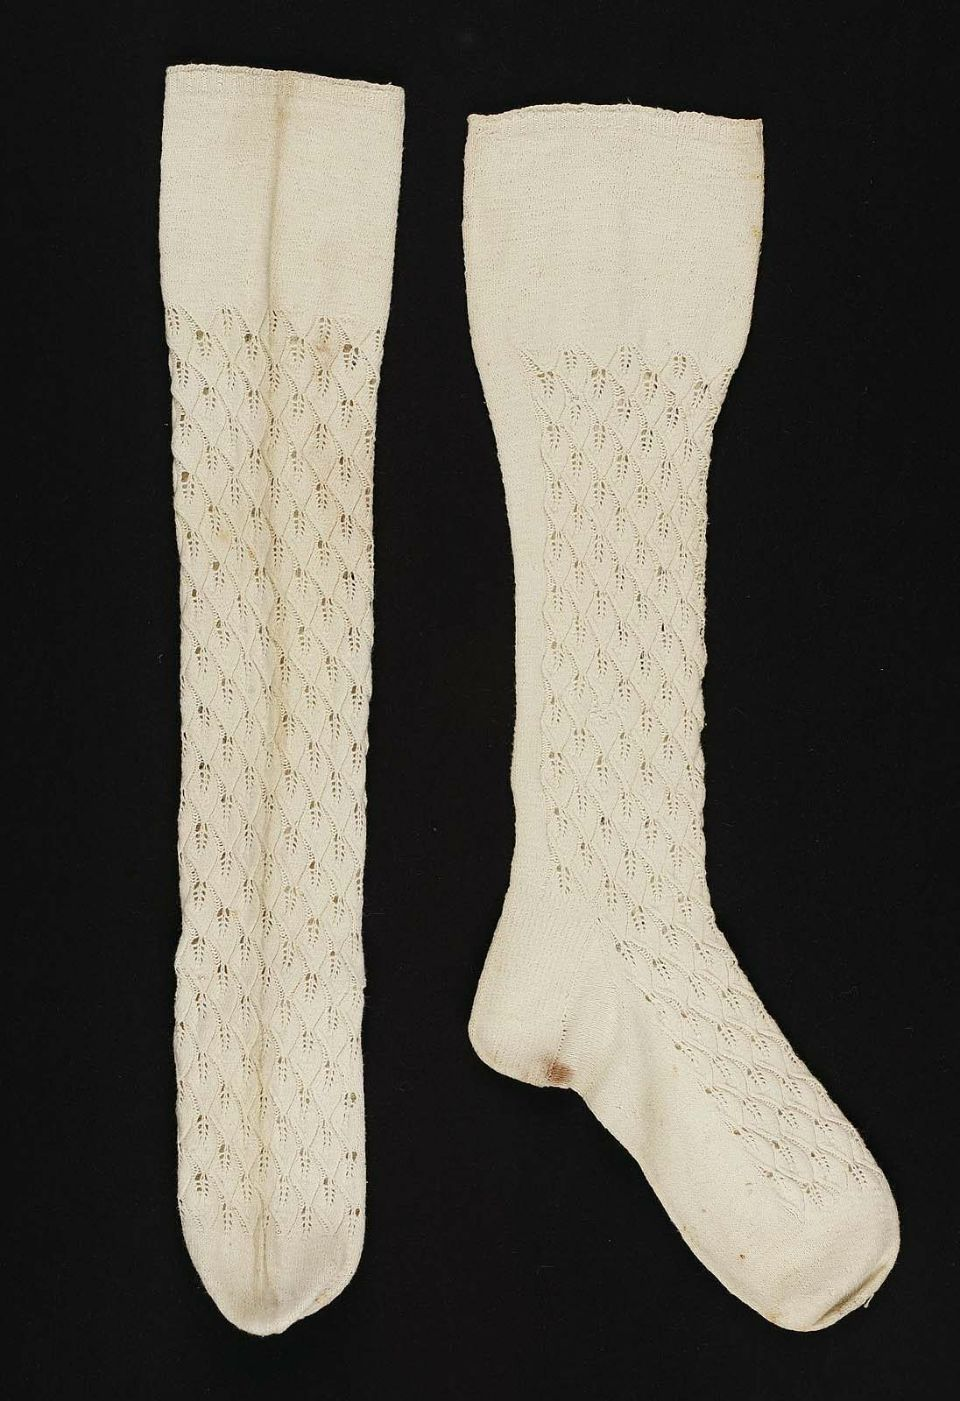 Early 19th century, America - Cotton knitted stockings